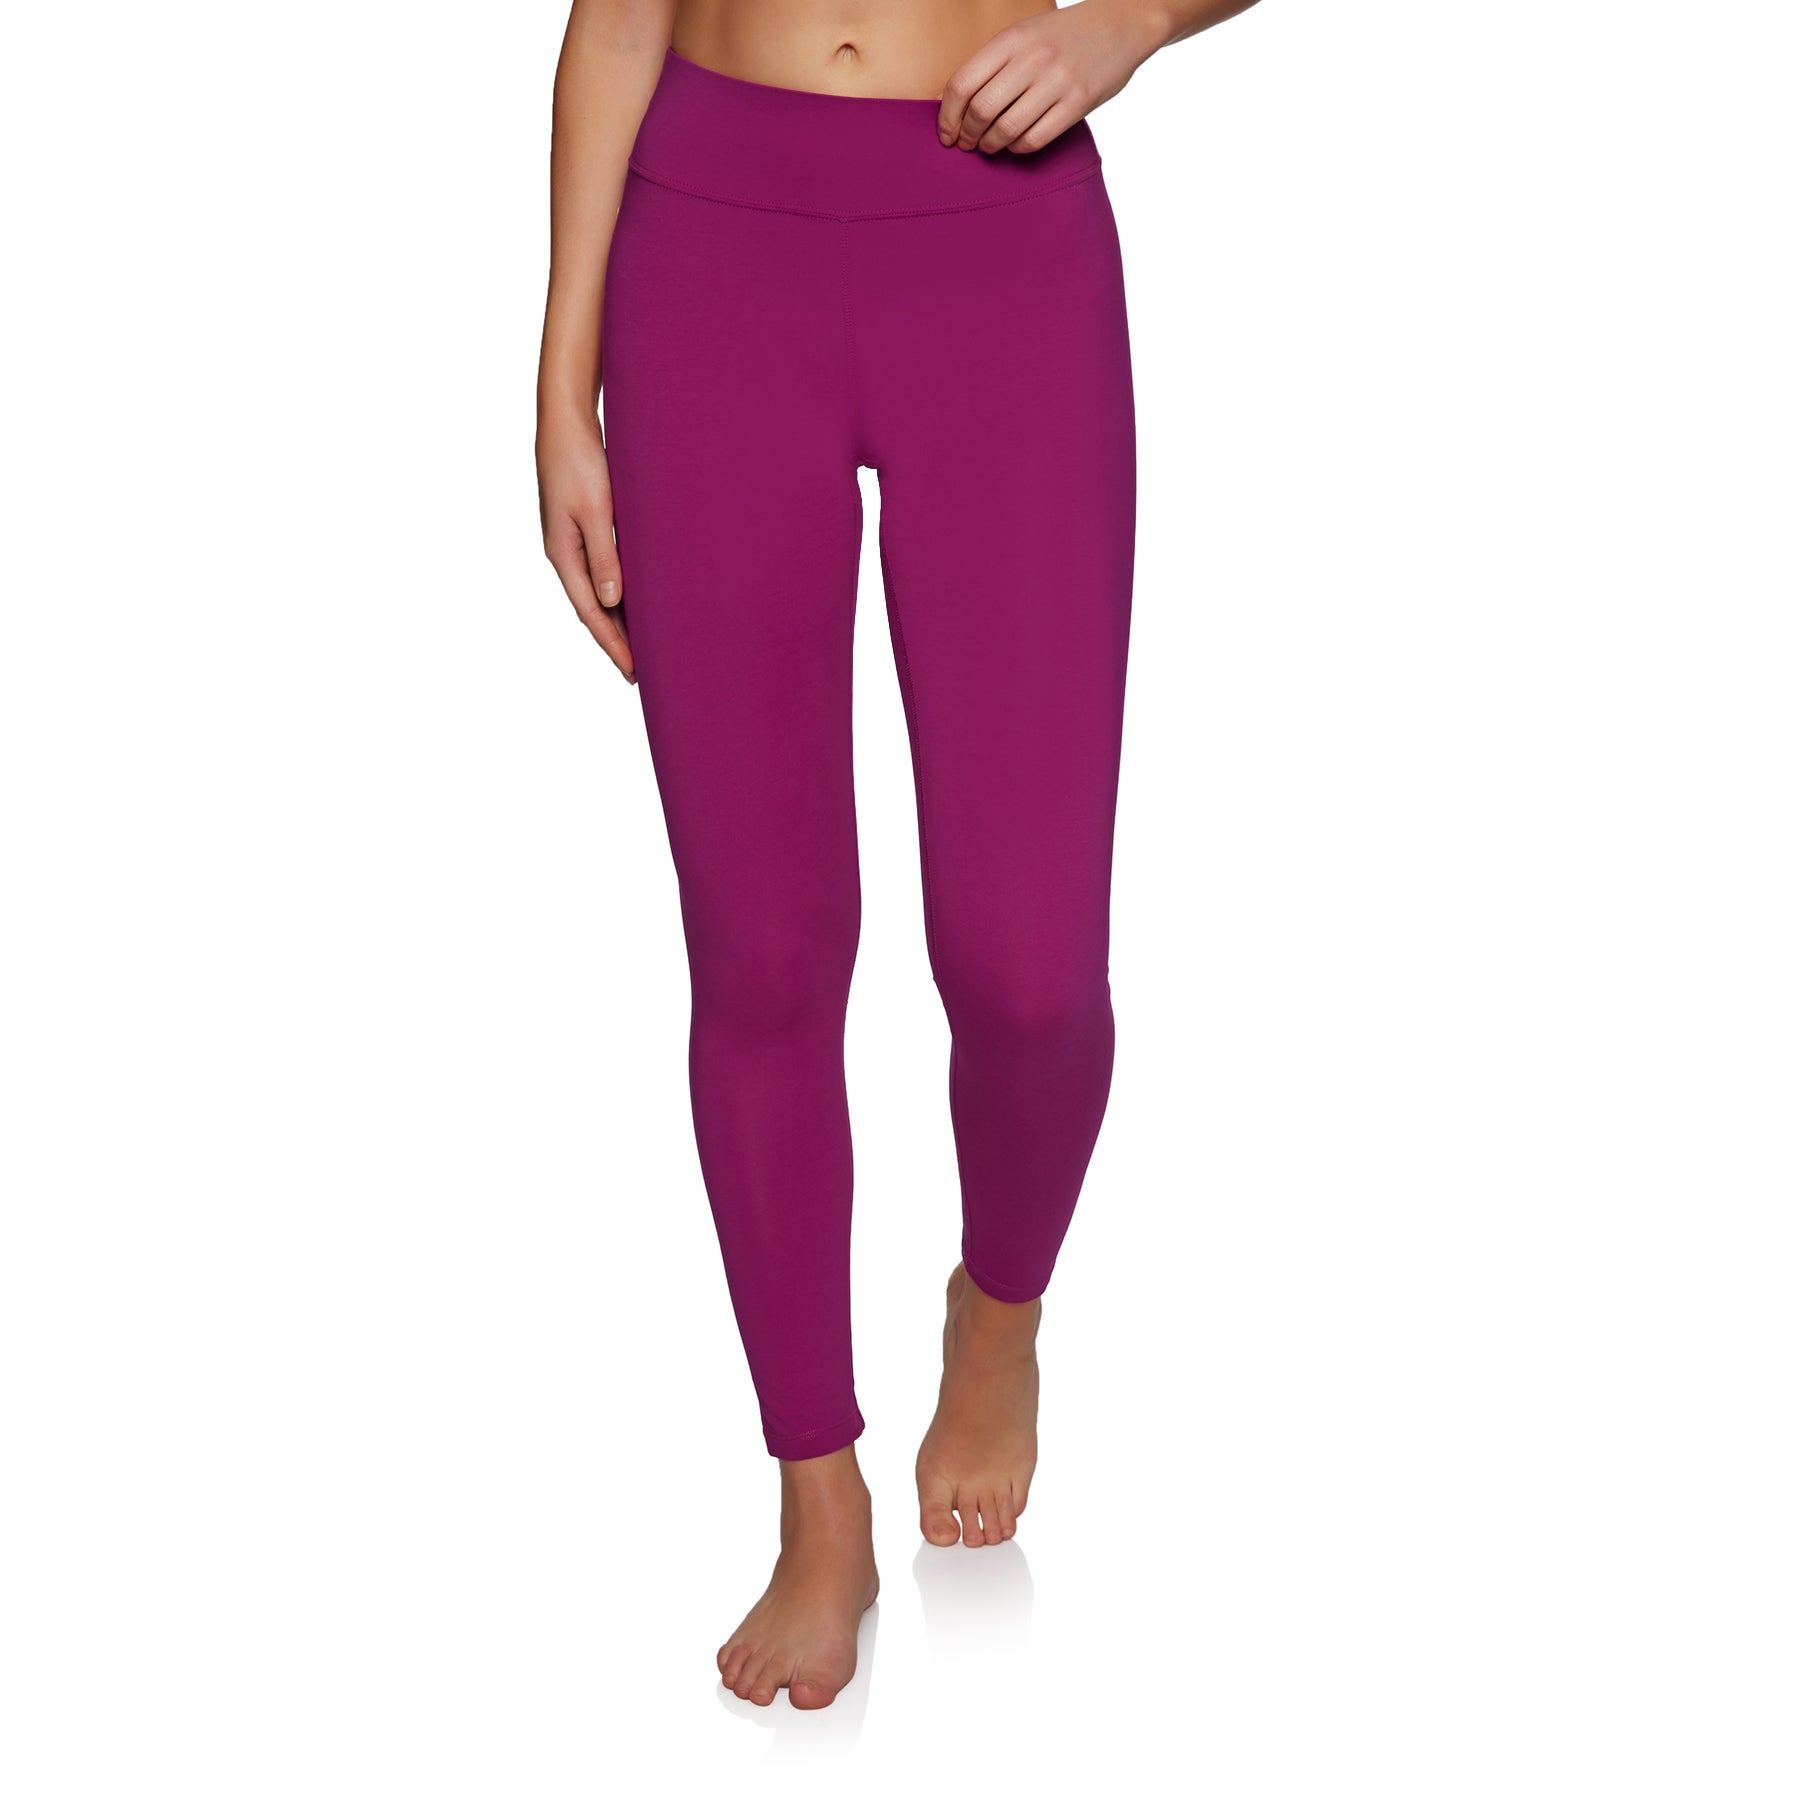 SWELL Cardrona Thermal Womens Base Layer Leggings - Mauve